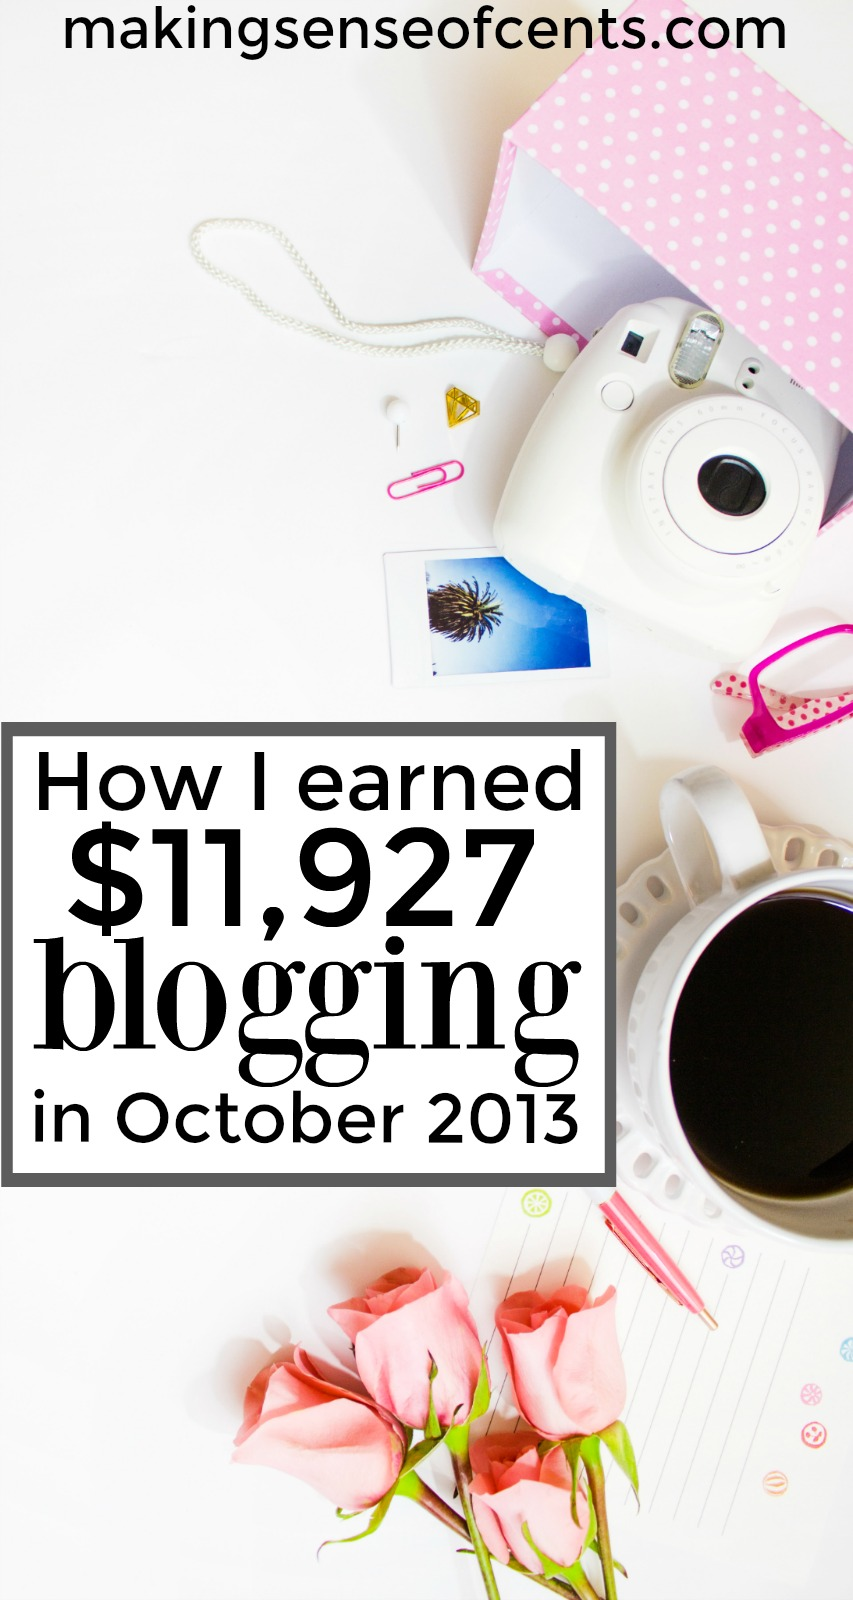 Find out how I earned $11,927 in October 2013.